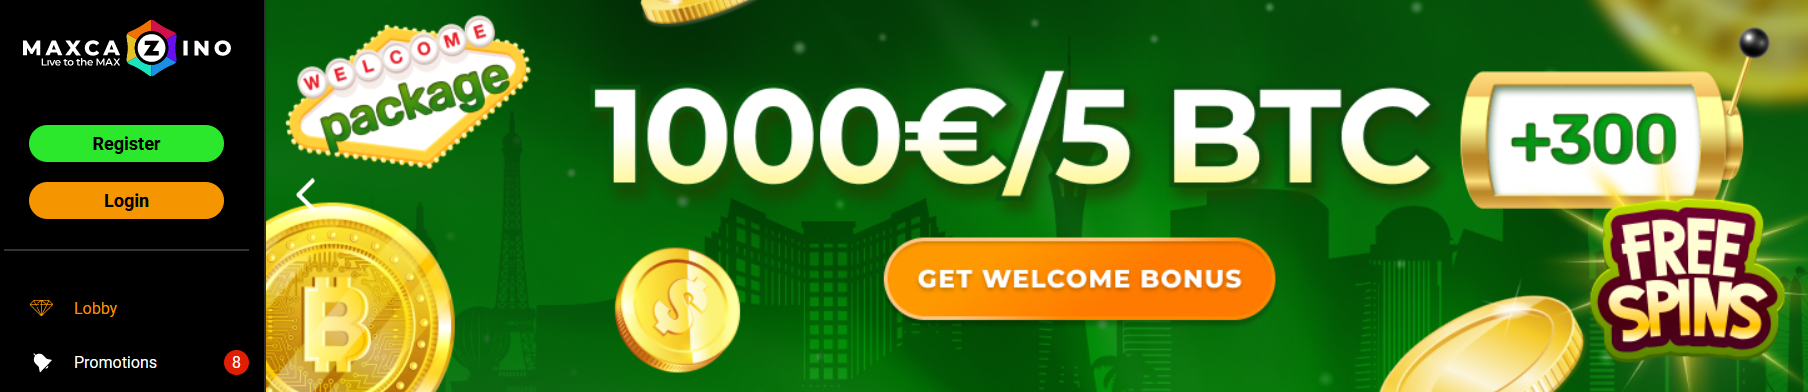 Maxcazino Freespins Welcome Package